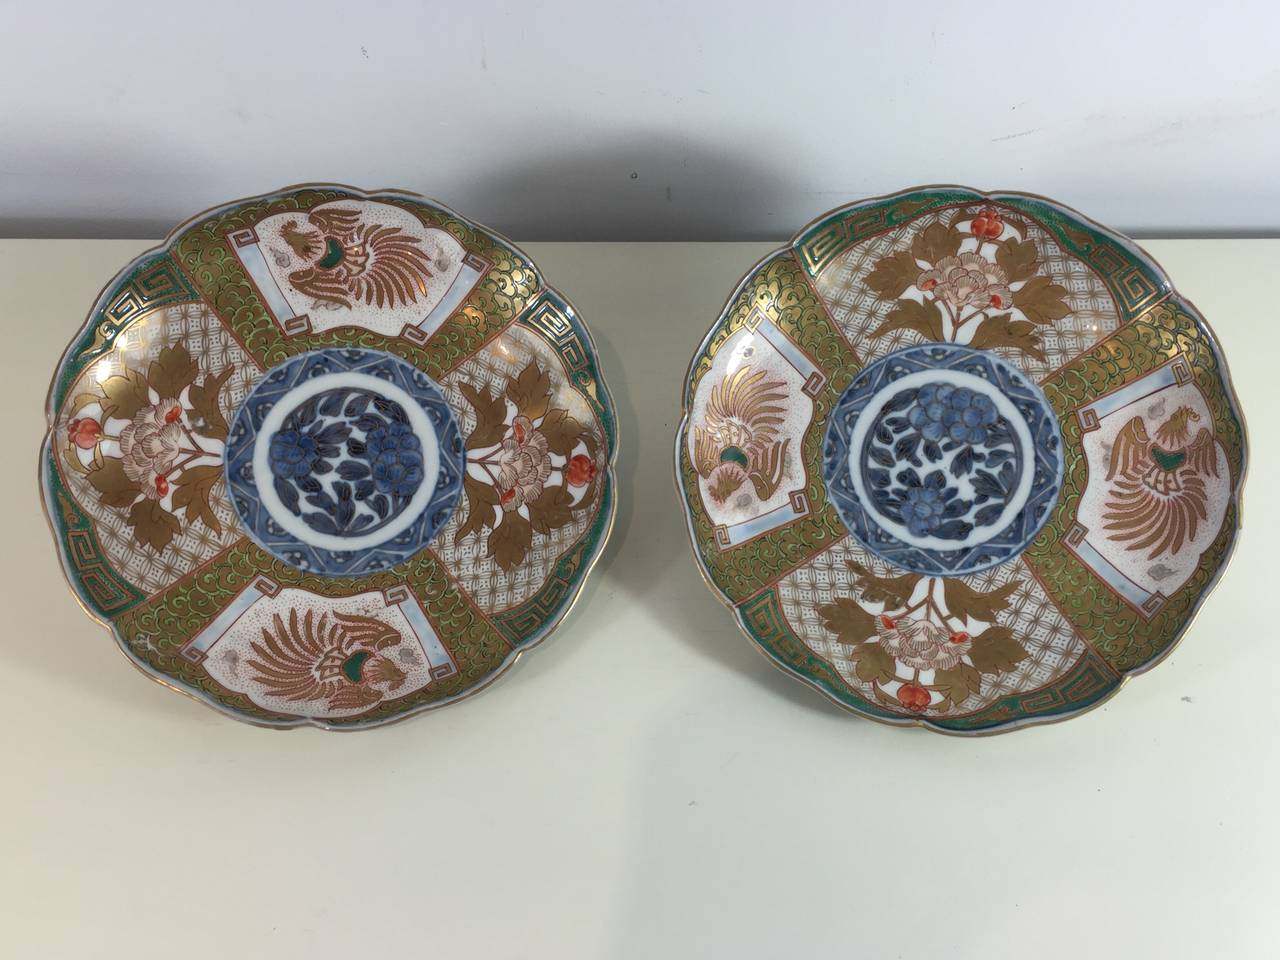 Pair of Fukagawa Imari Plates, of circular scalloped form and unusual decoration in green, gold and blue palate. With blue underglaze mark, and decorated exterior rim